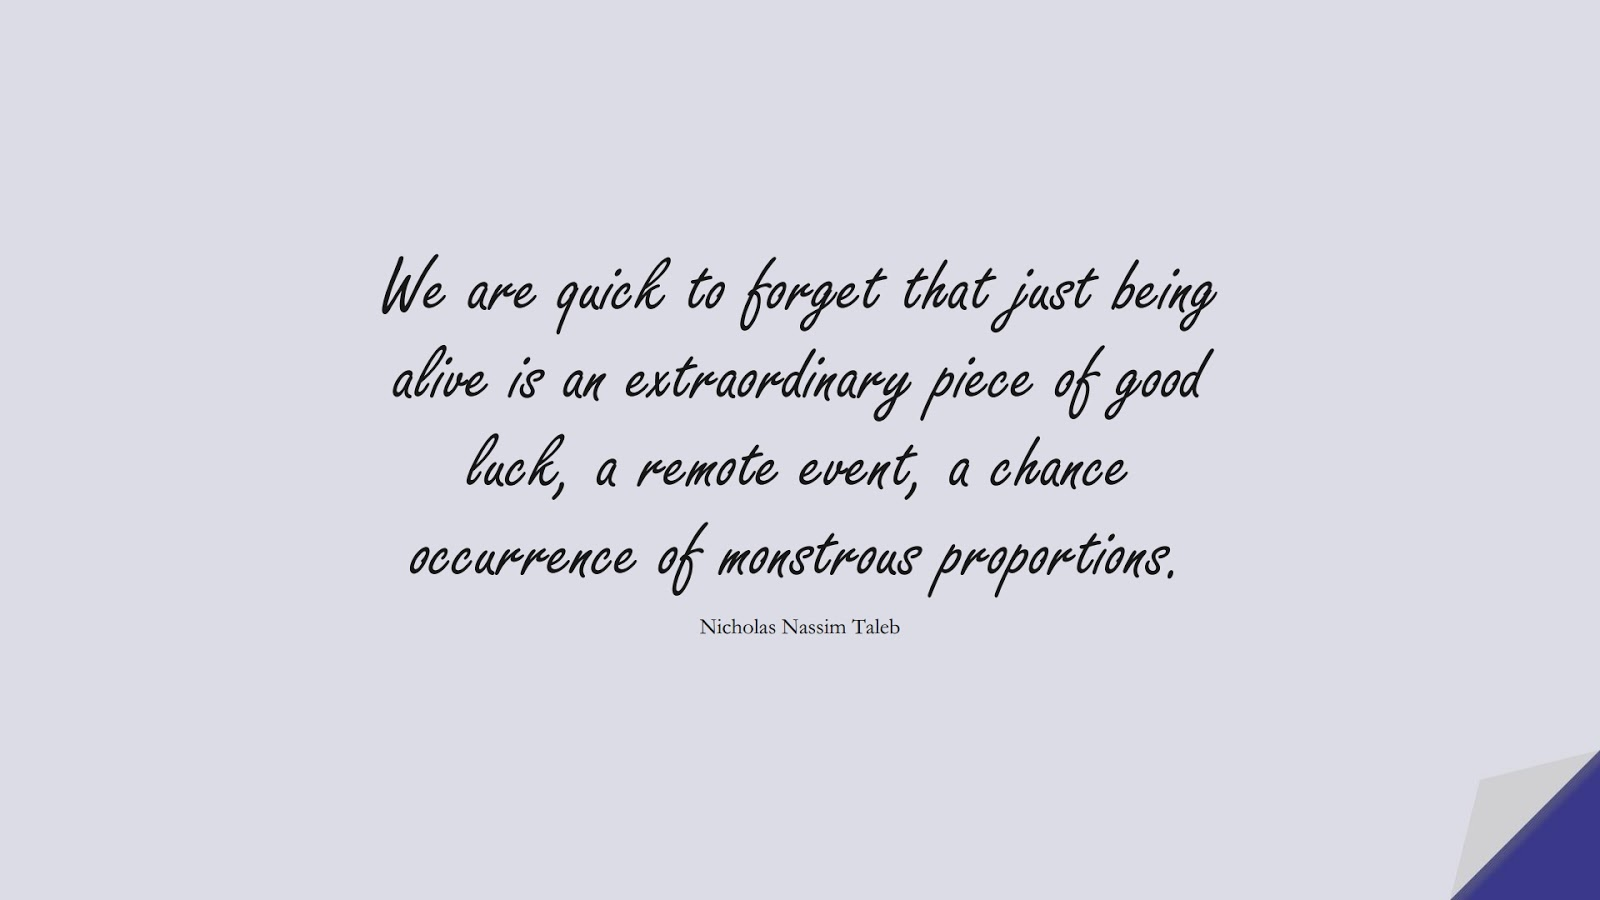 We are quick to forget that just being alive is an extraordinary piece of good luck, a remote event, a chance occurrence of monstrous proportions. (Nicholas Nassim Taleb);  #StoicQuotes